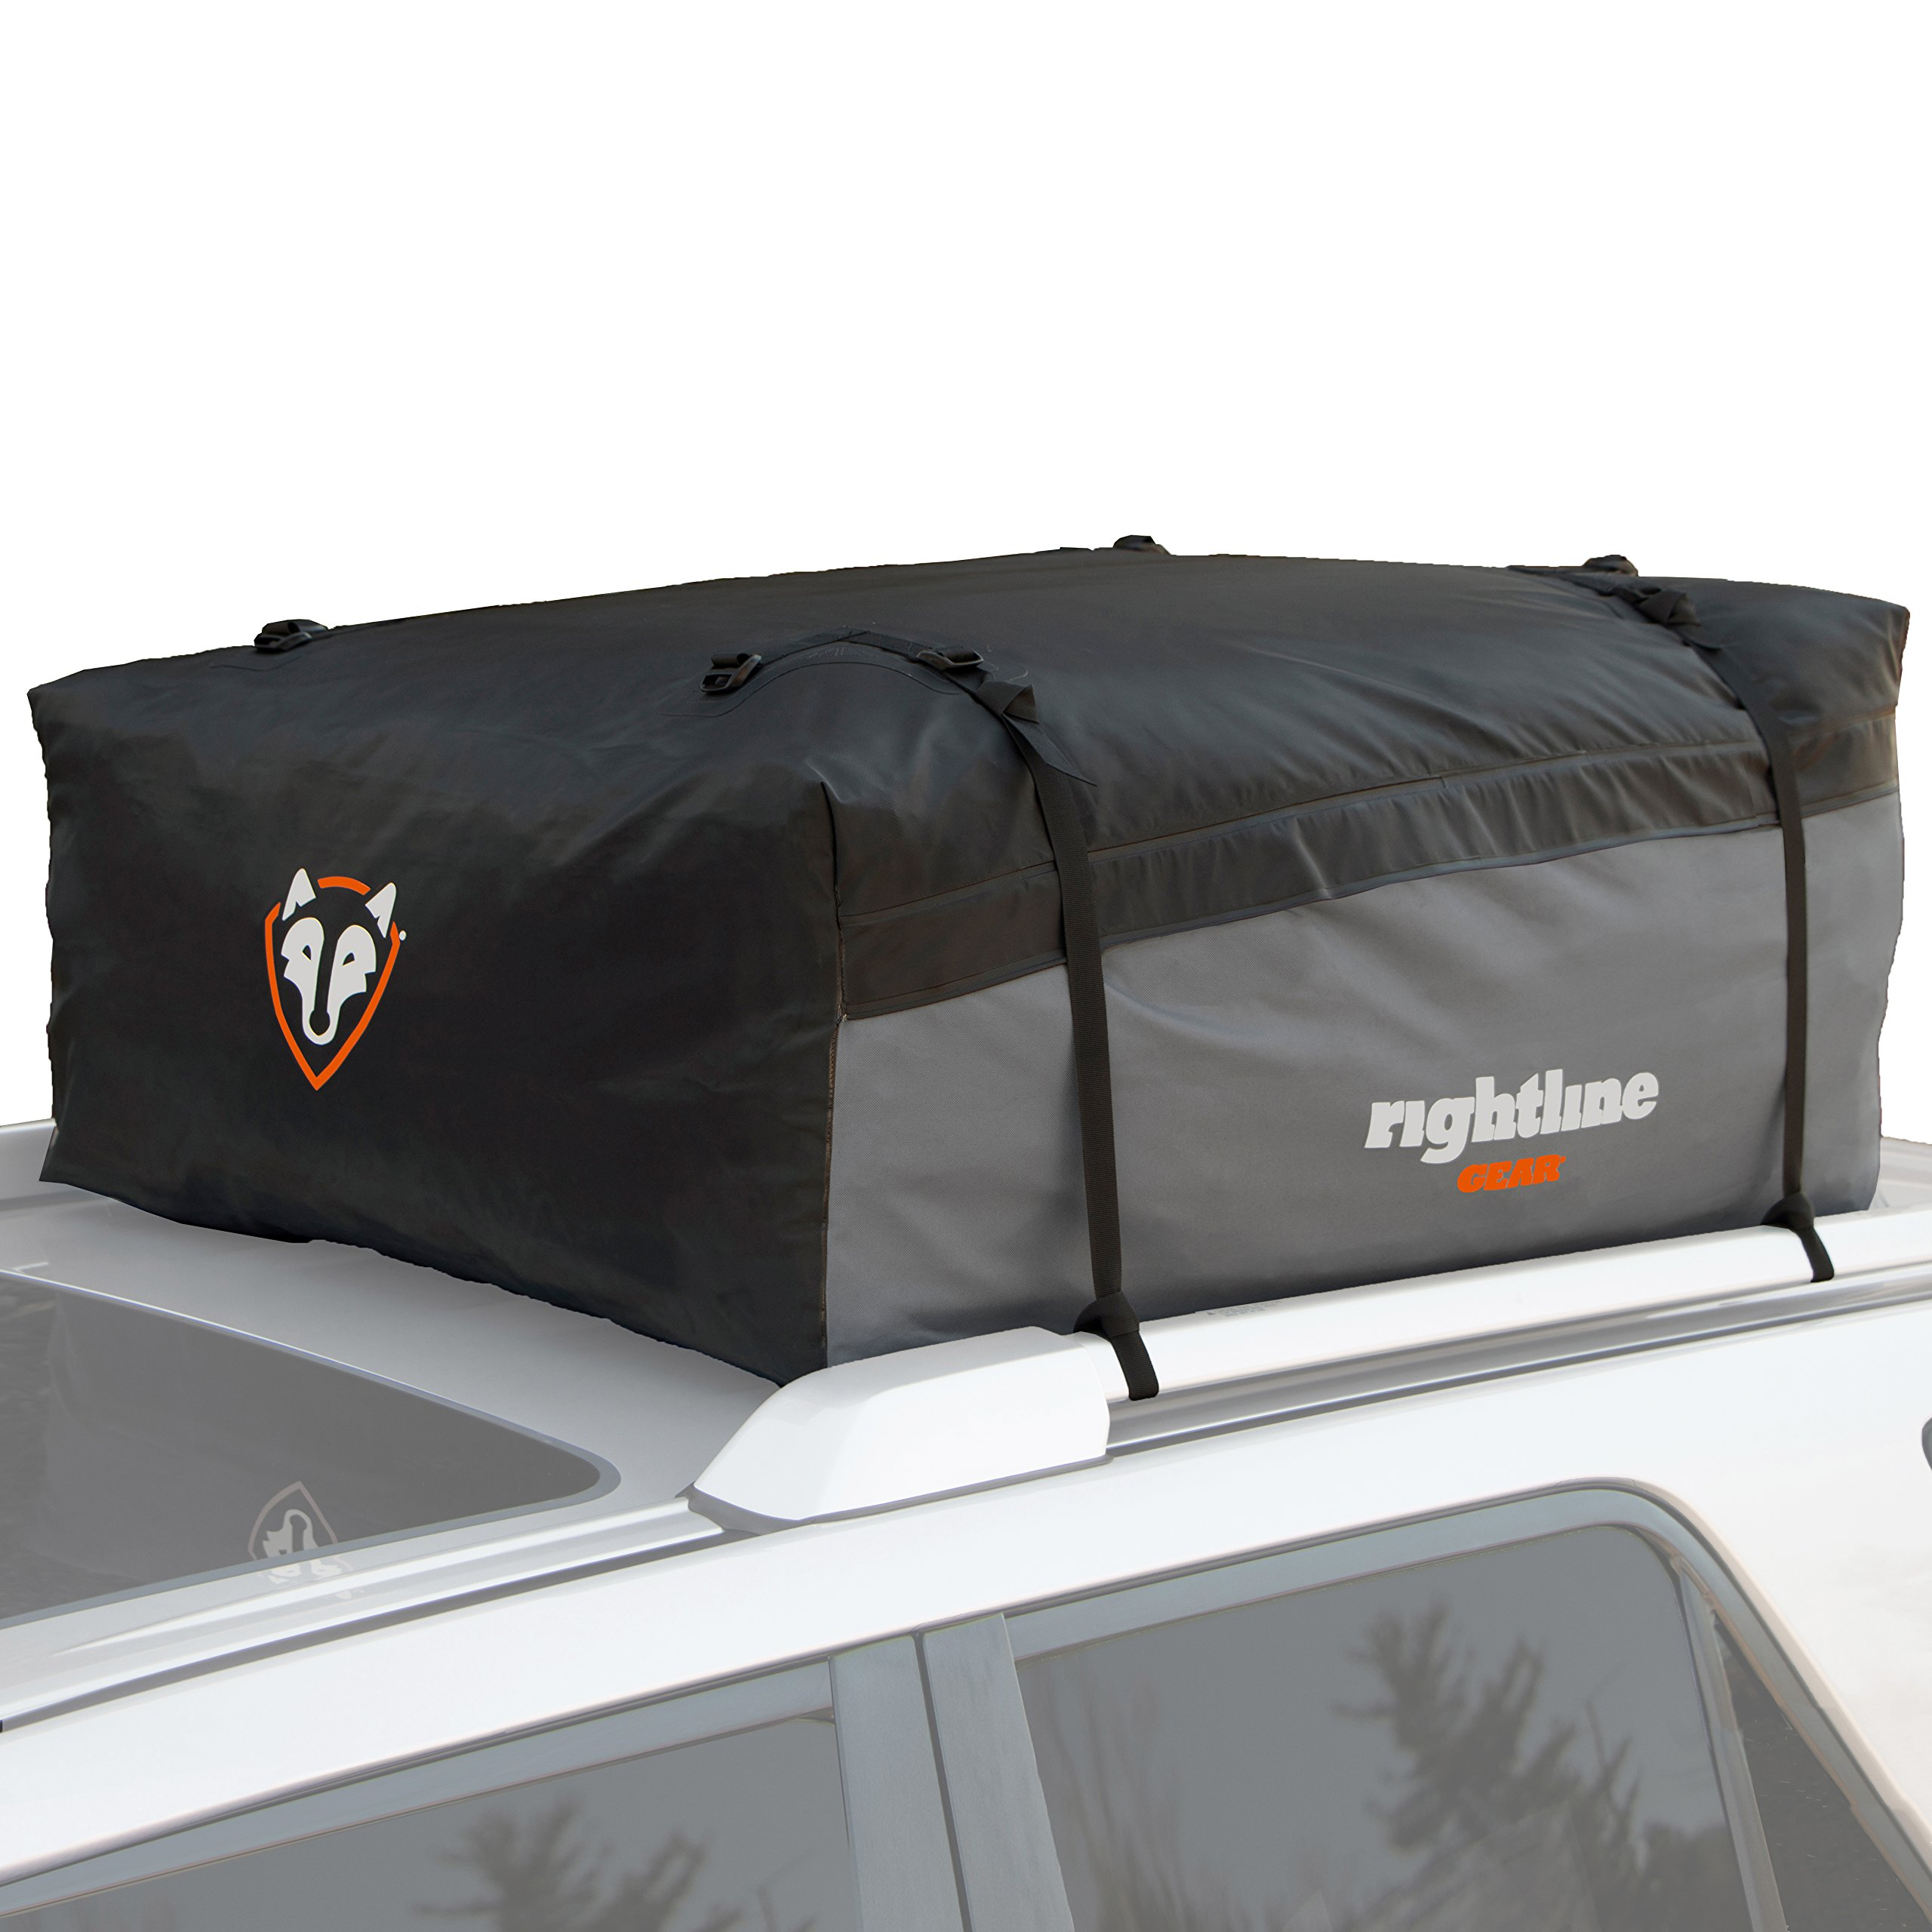 Rightline Gear 100S20 Sport 2 Car Top Carrier, 15 cu ft, Waterproof, Attaches With or Without Roof Rack by Rightline Gear